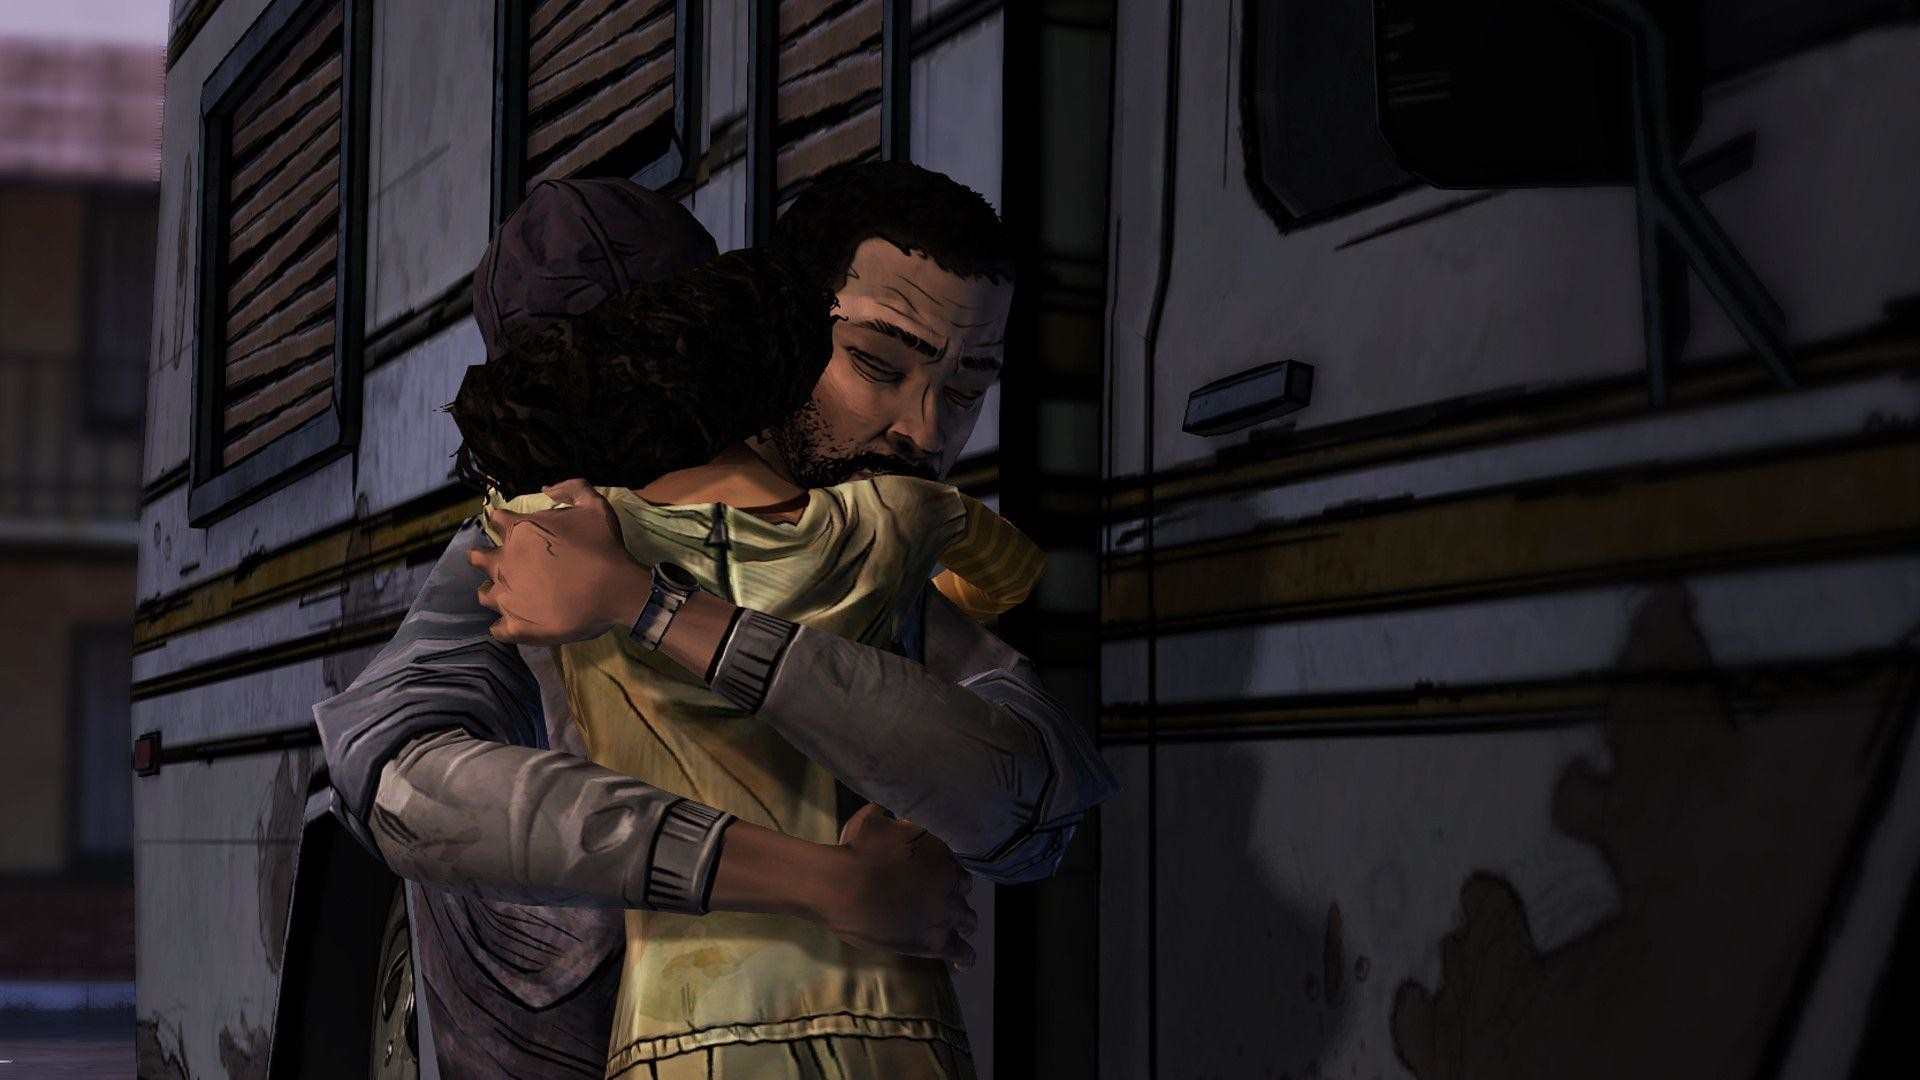 1920x1080 Images For > Walking Dead Game Iphone Wallpaper